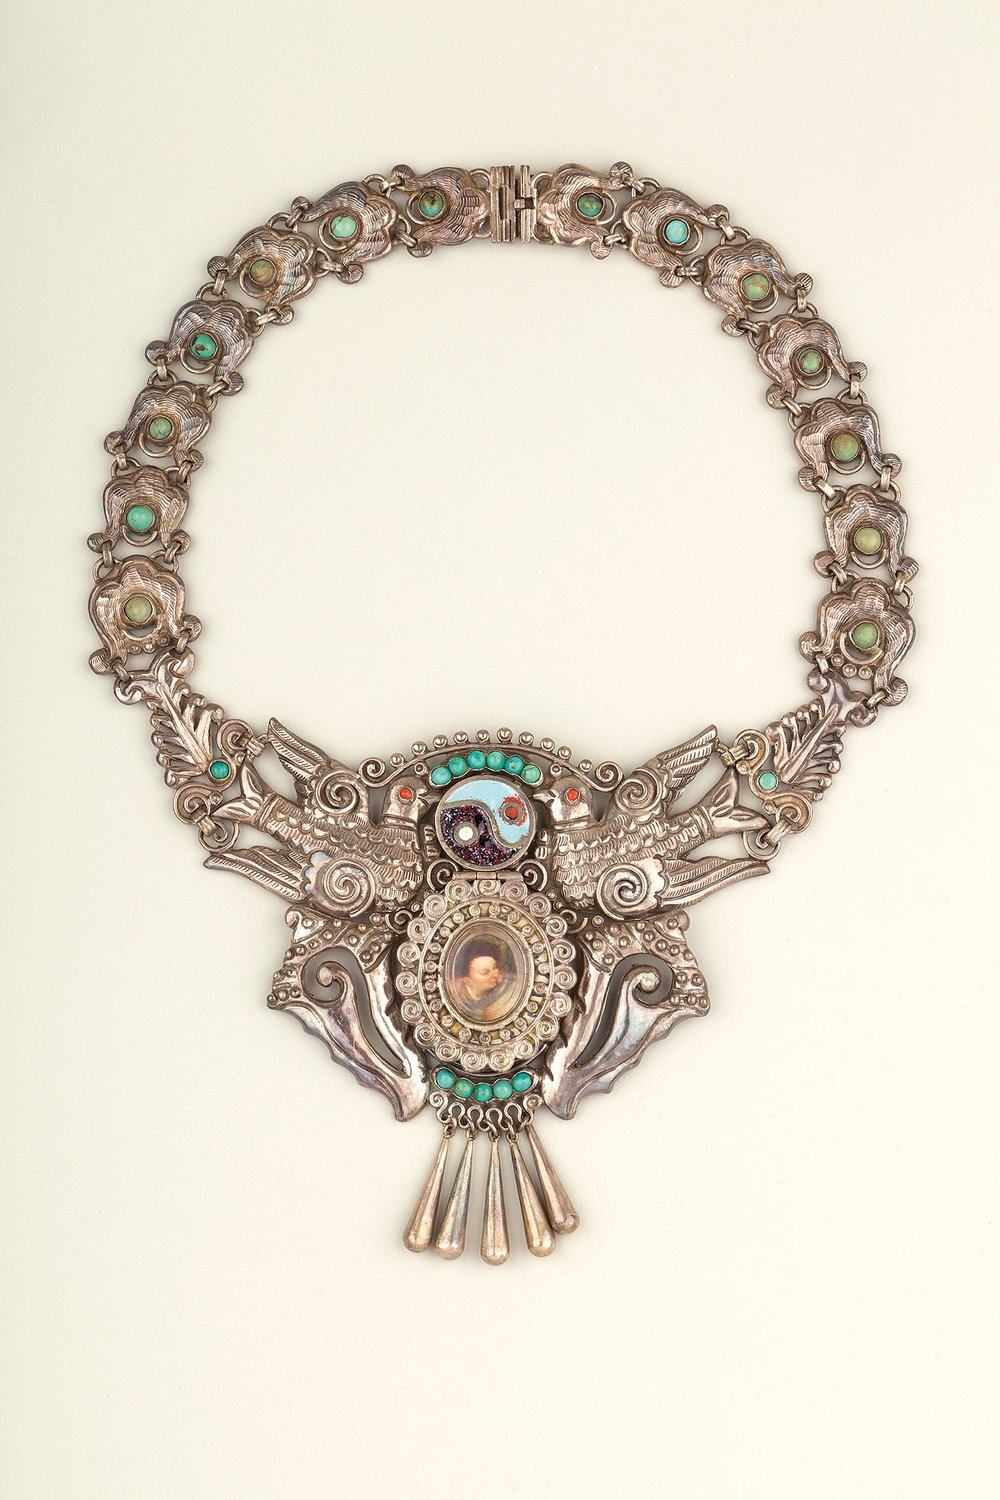 Necklace of silver, enamel, turquoise and coral with   hinged   compartment, made by Matilde Poulat, Mexico City, c.1950. Museo Frida Kahlo. Photograph Javier Hinojosa. © Diego Riviera and Frida Kahlo Archives, Banco de México, Fiduciary of the Trust of the Diego Riviera and Frida Kahlo Museums.